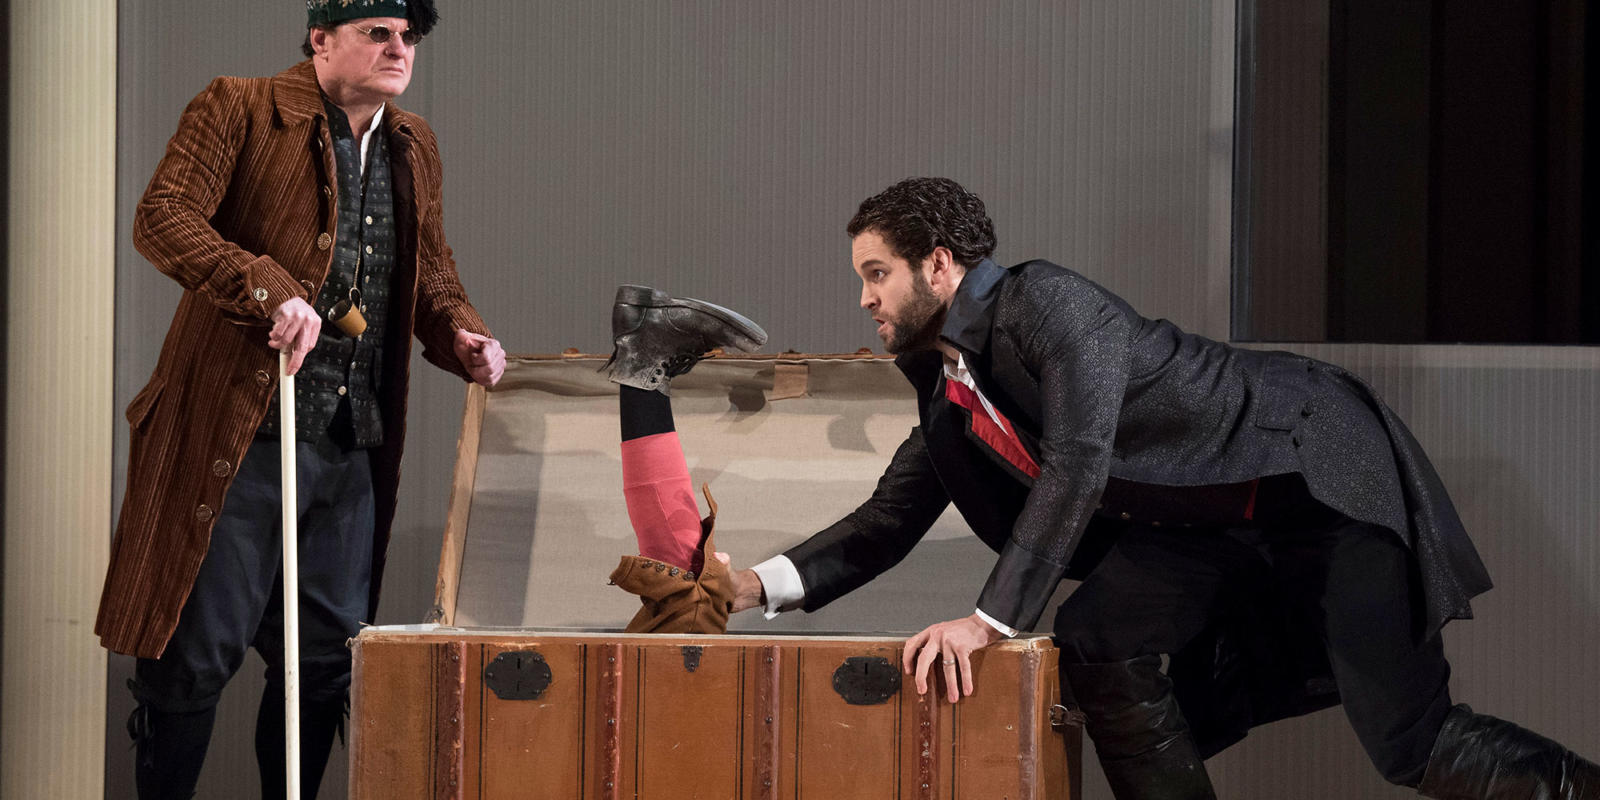 ENO 17/18: The Marriage of Figaro Colin Judd Ashley Riches (c) Alastair Muir